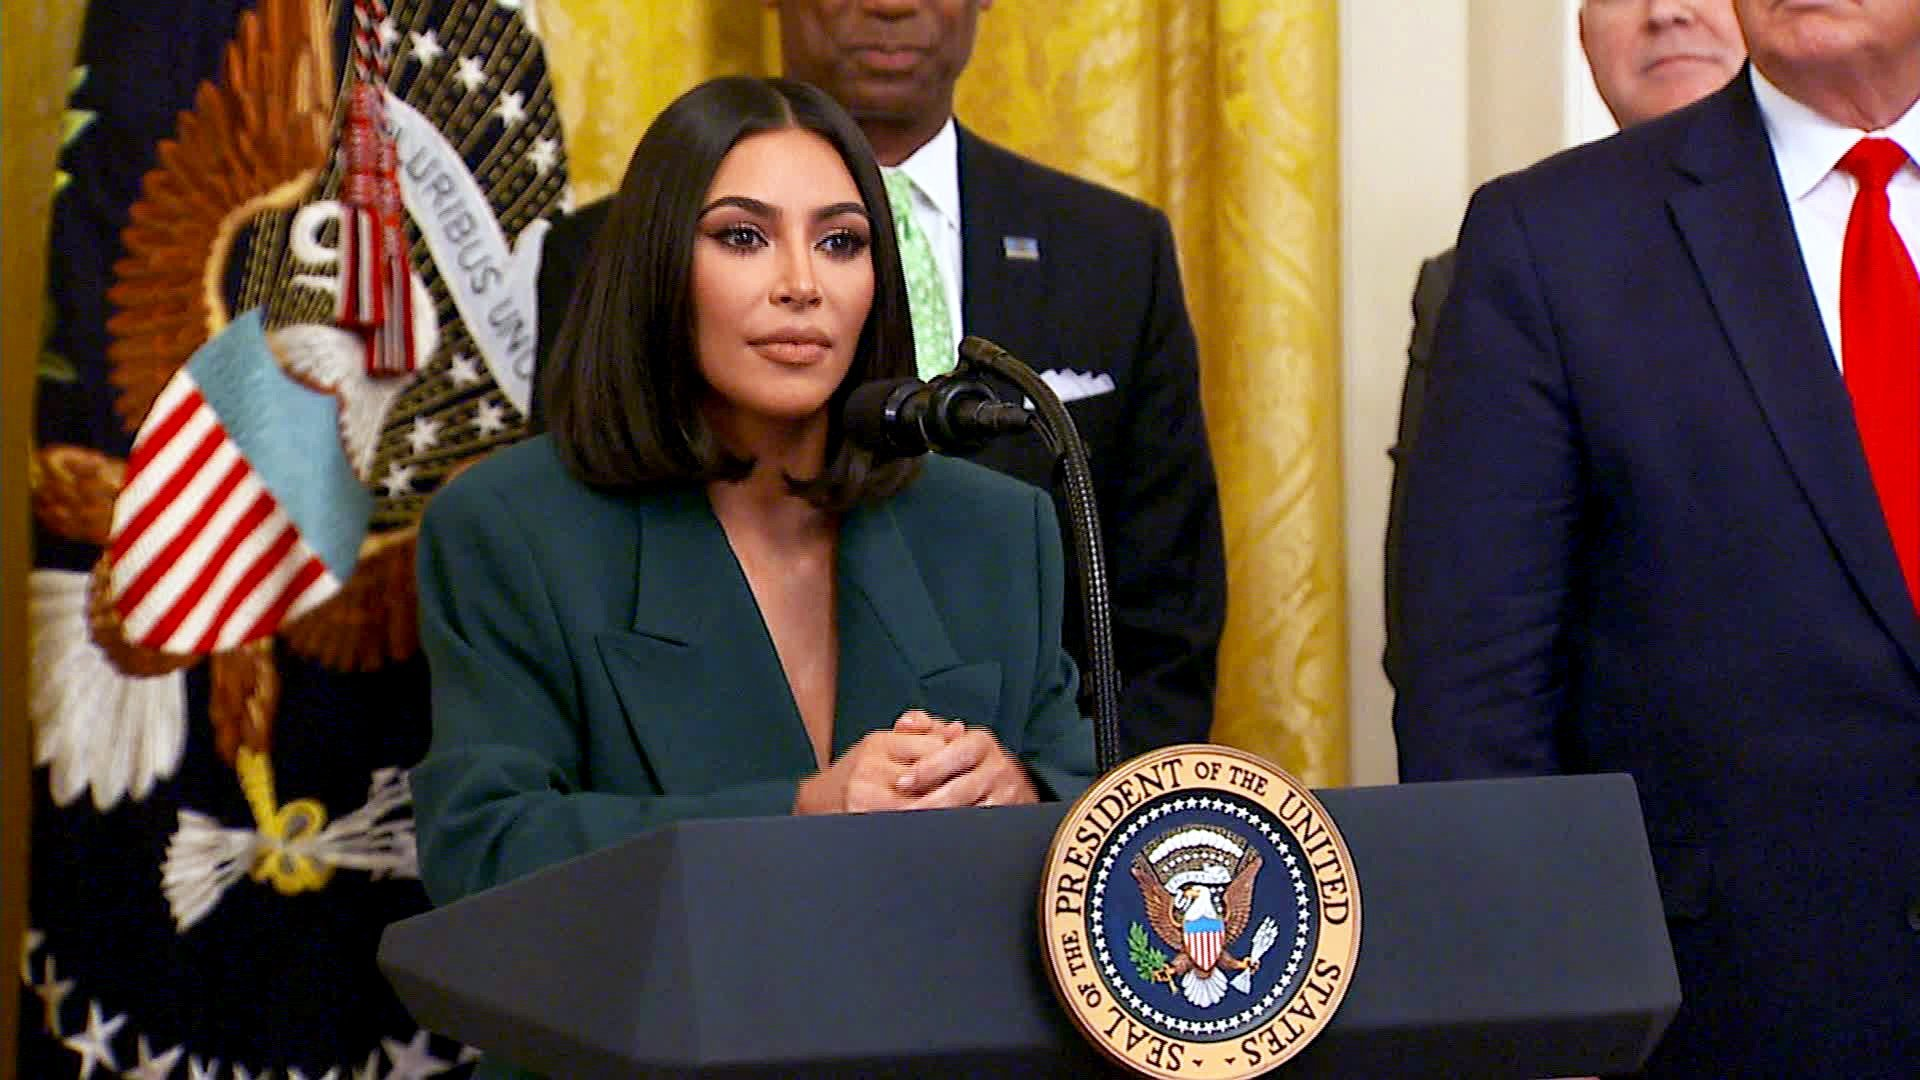 When Rodney Reed's execution was delayed, Kim Kardashian West says she was with him